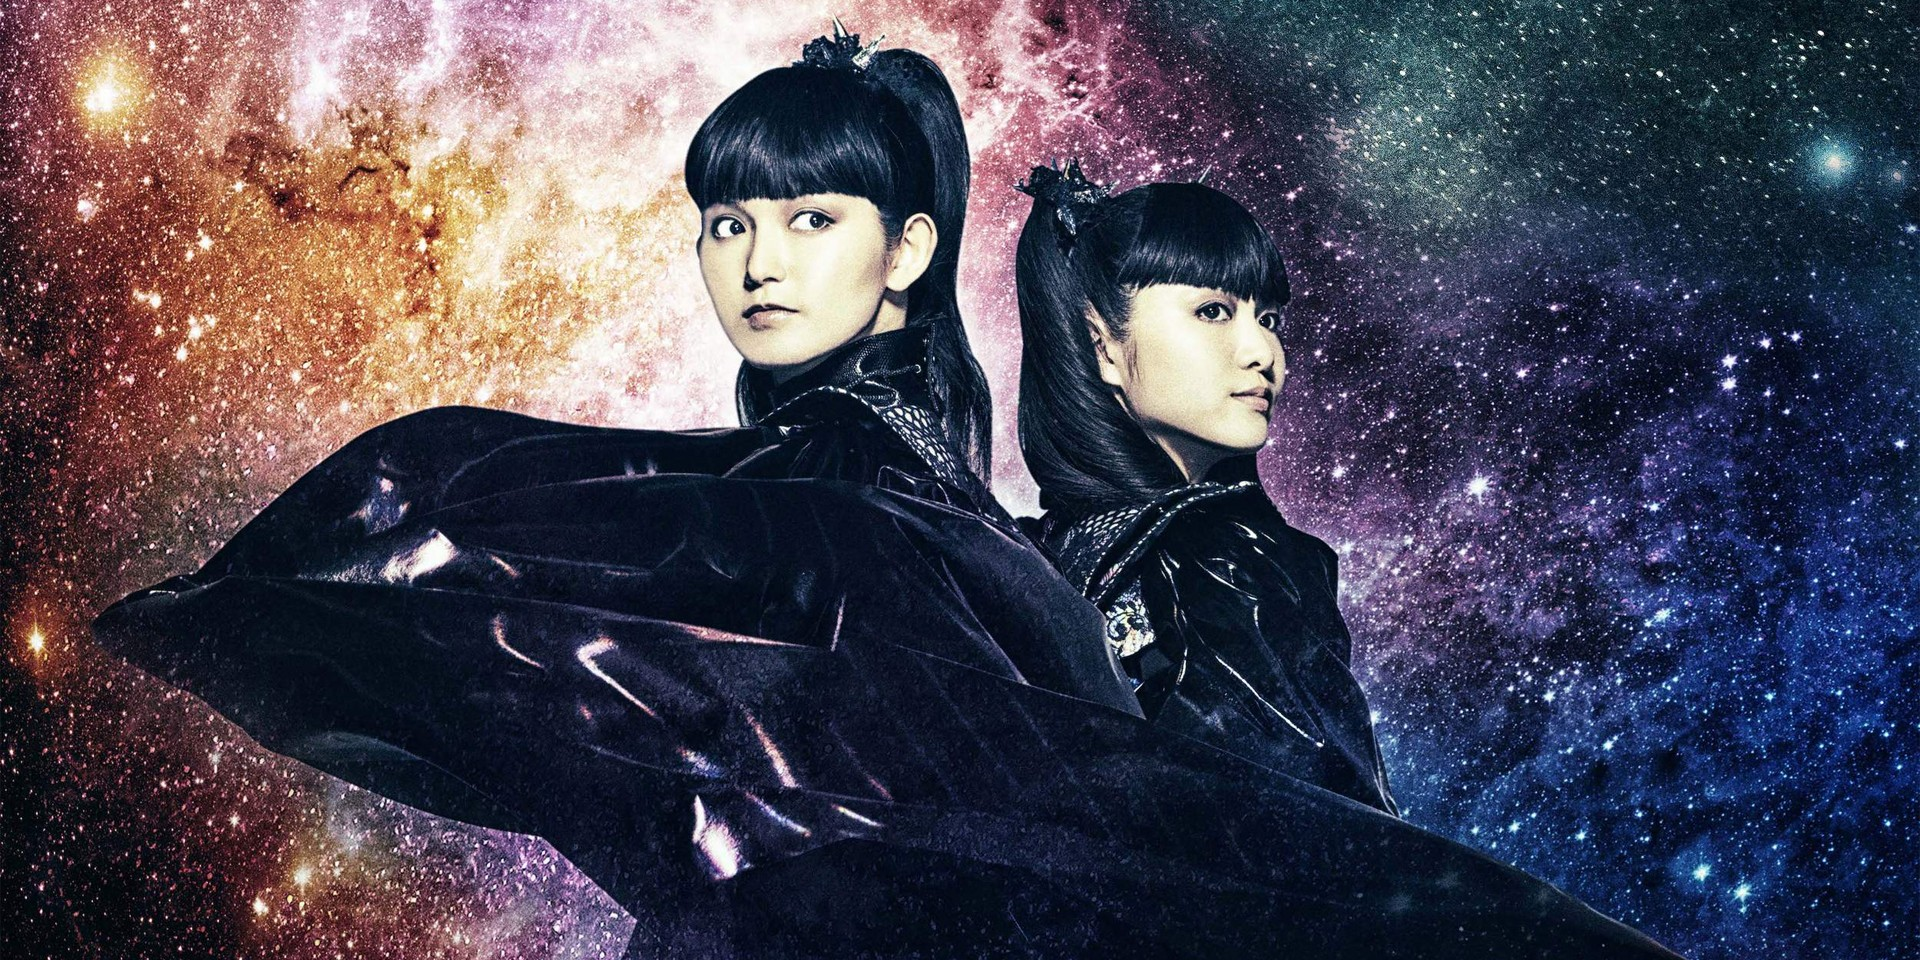 BABYMETAL to celebrate 10th anniversary with special compilation album, announce Bring Me the Horizon collaboration